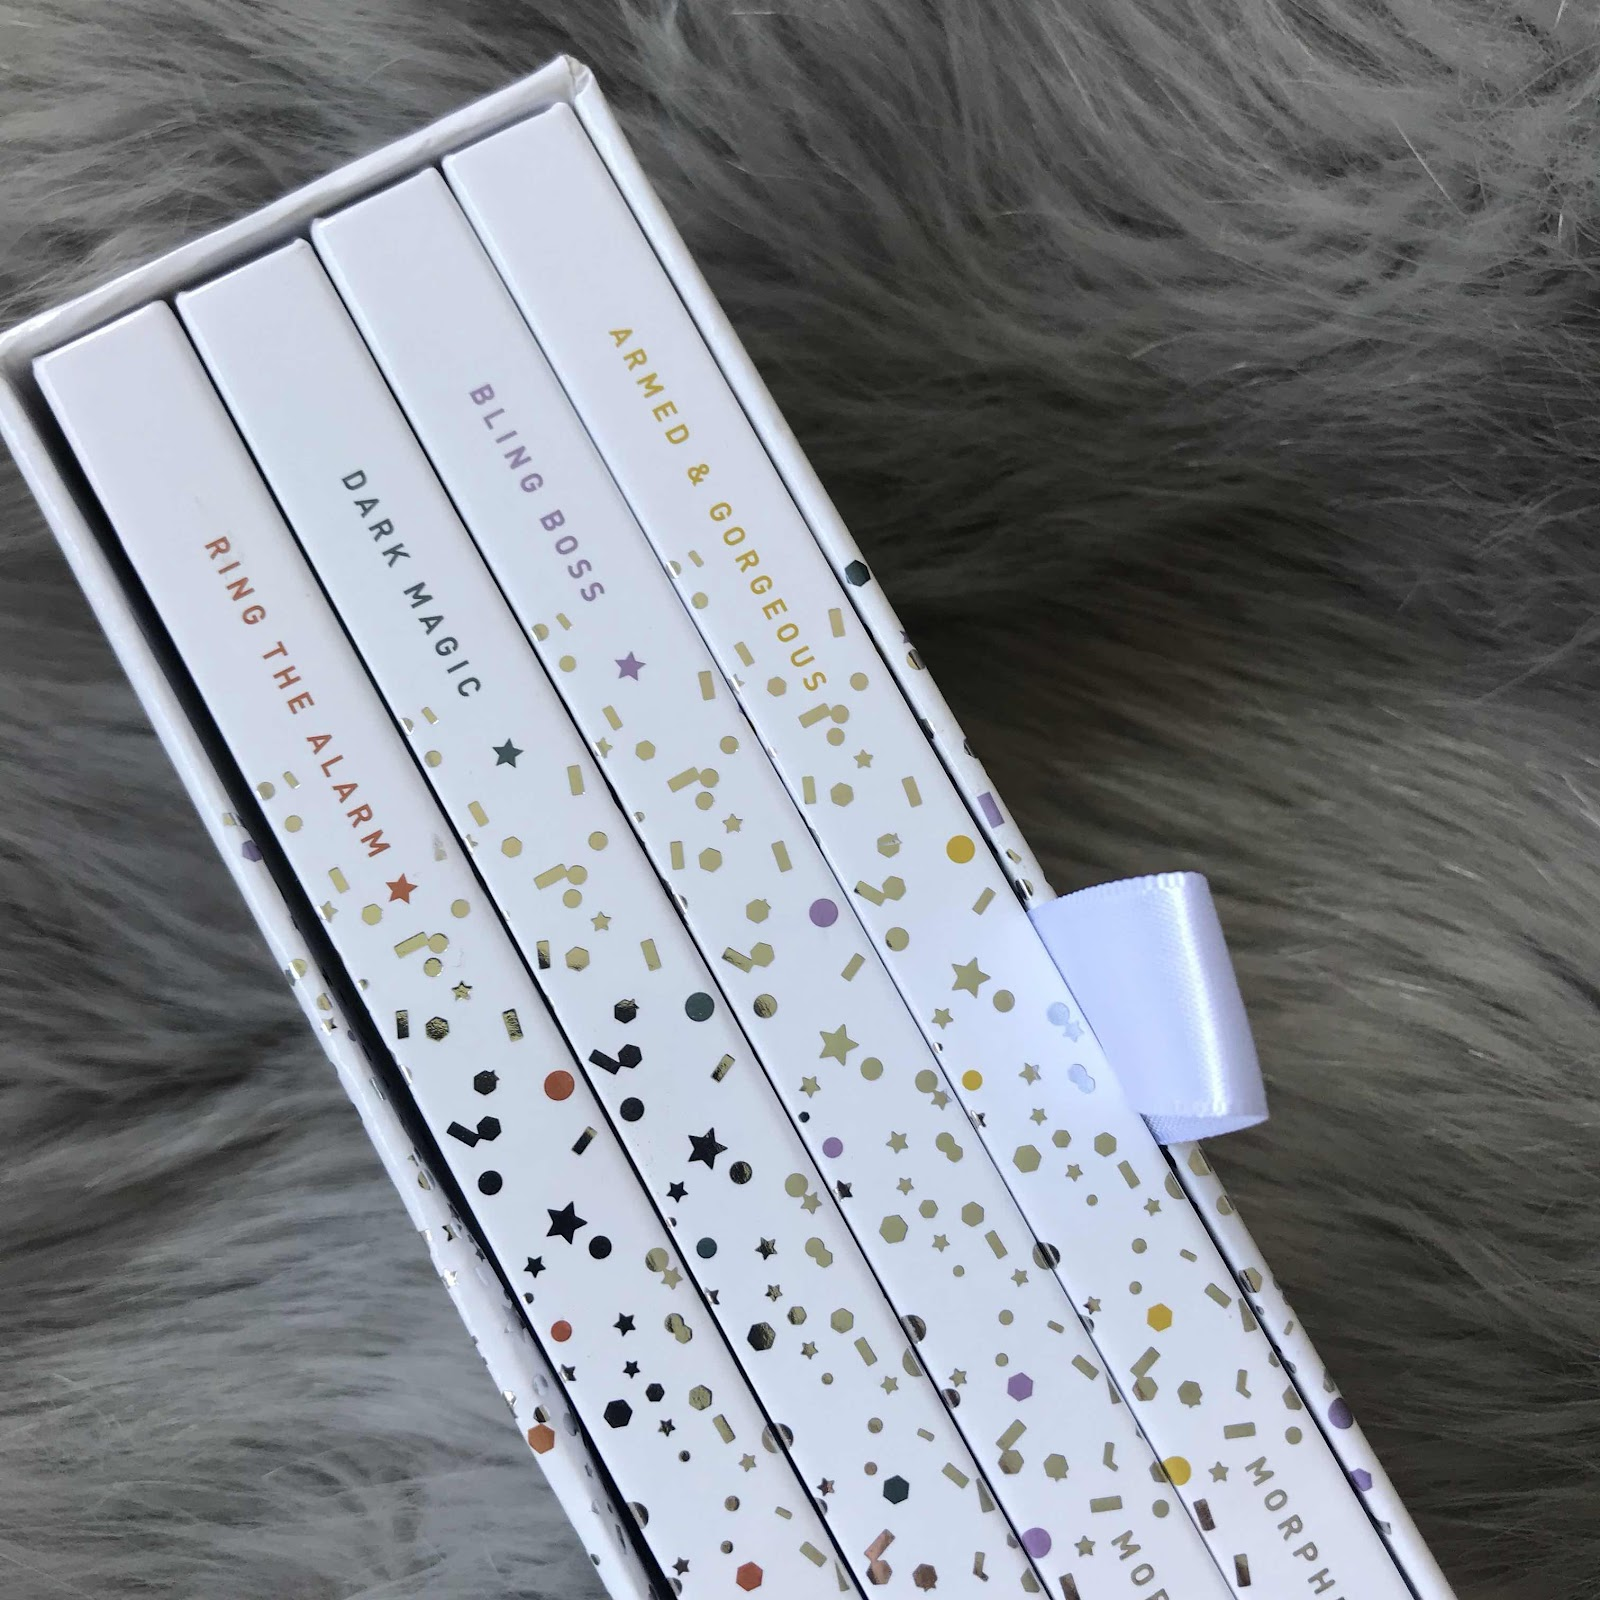 MORPHE X JACLYN HILL - THE VAULT COLLECTION SWATCHES & FIRST IMPRESSIONS